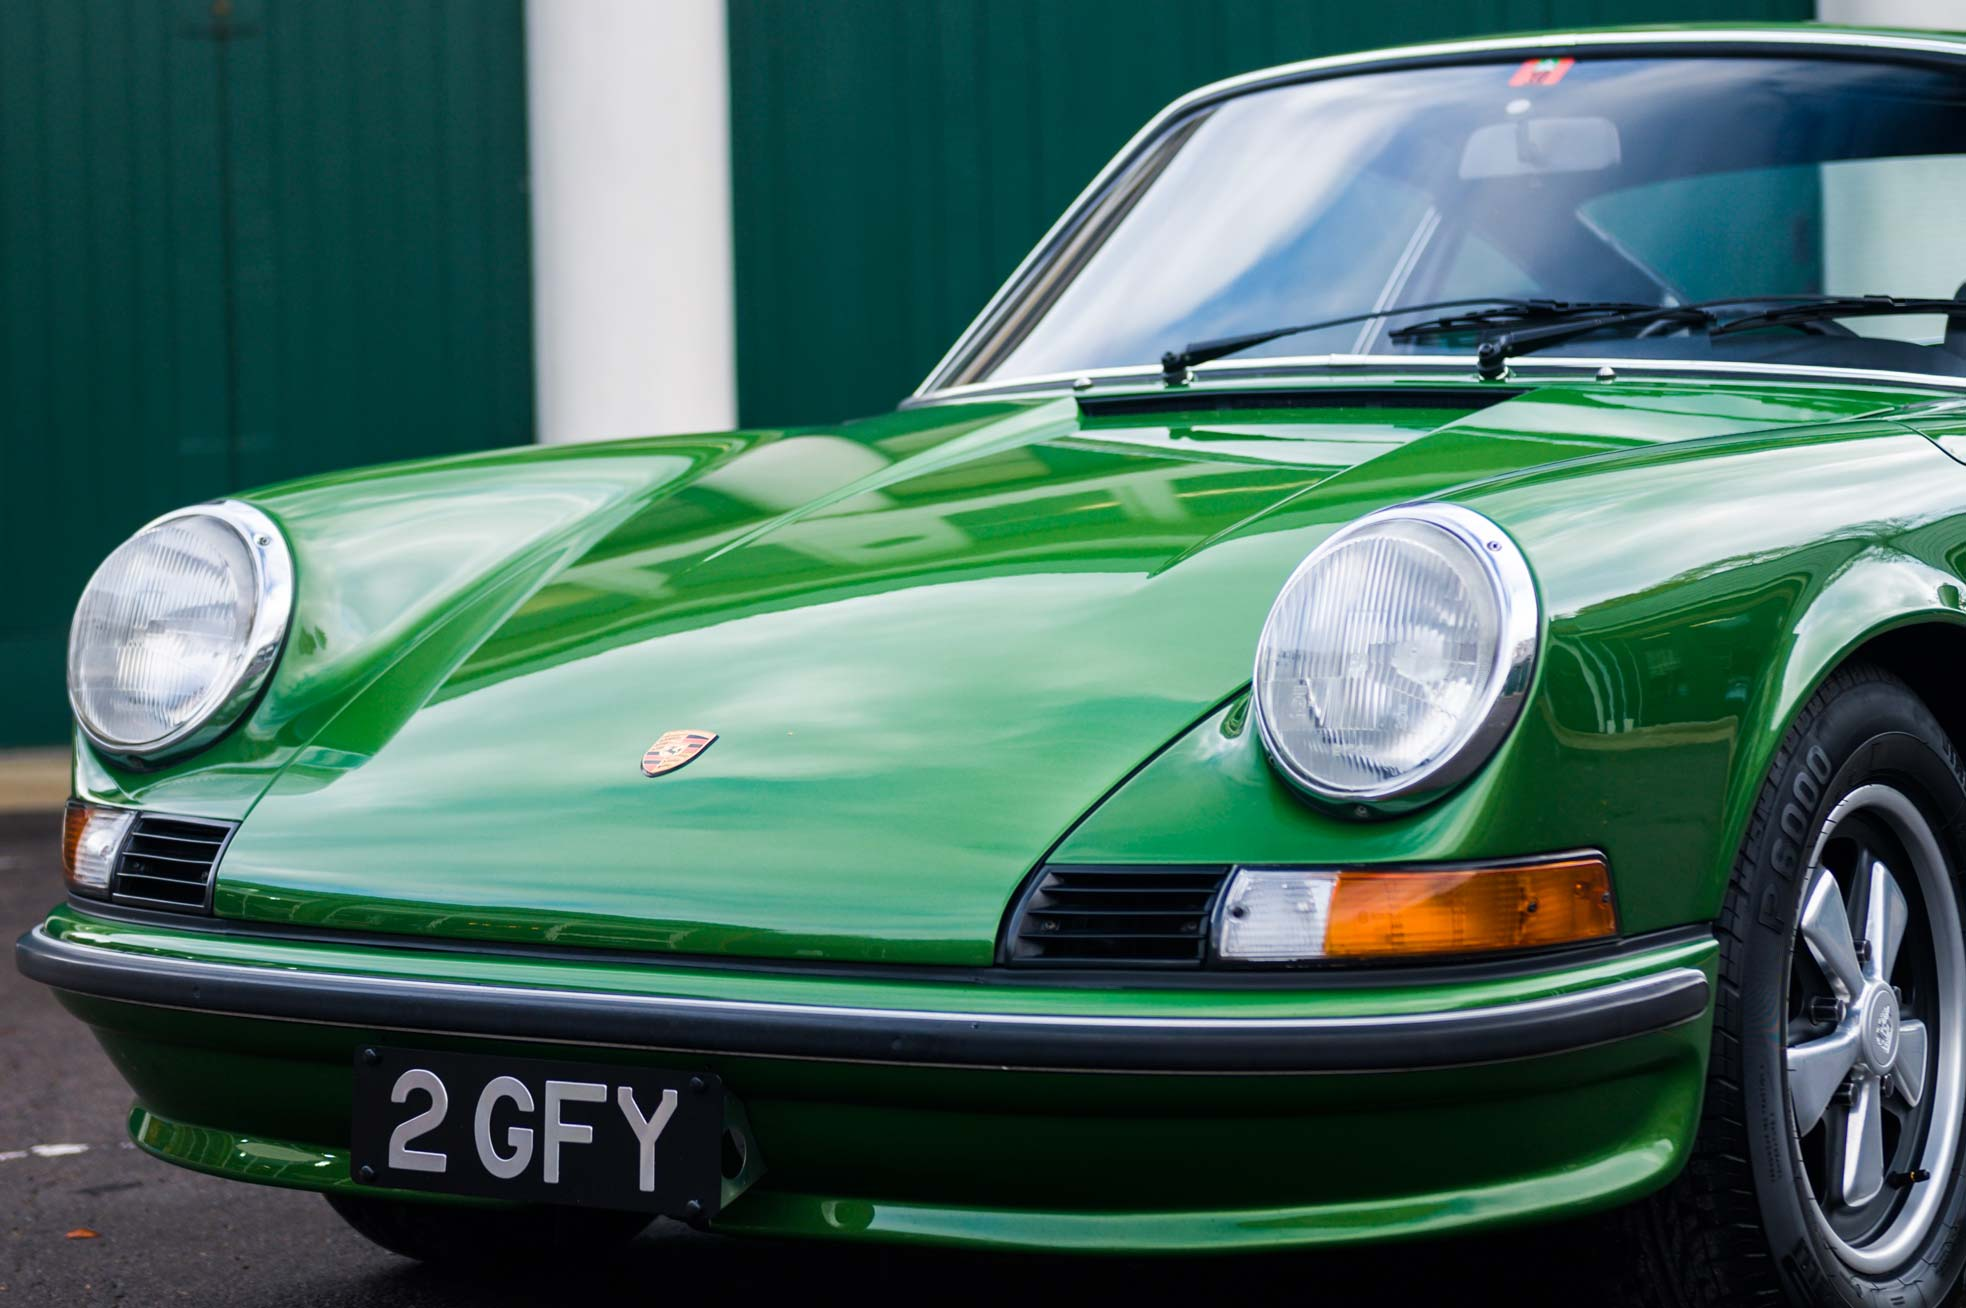 1973 Porsche 911S 2.4. For Sale Sports Purpose, Bicester Heritage, Oxon.